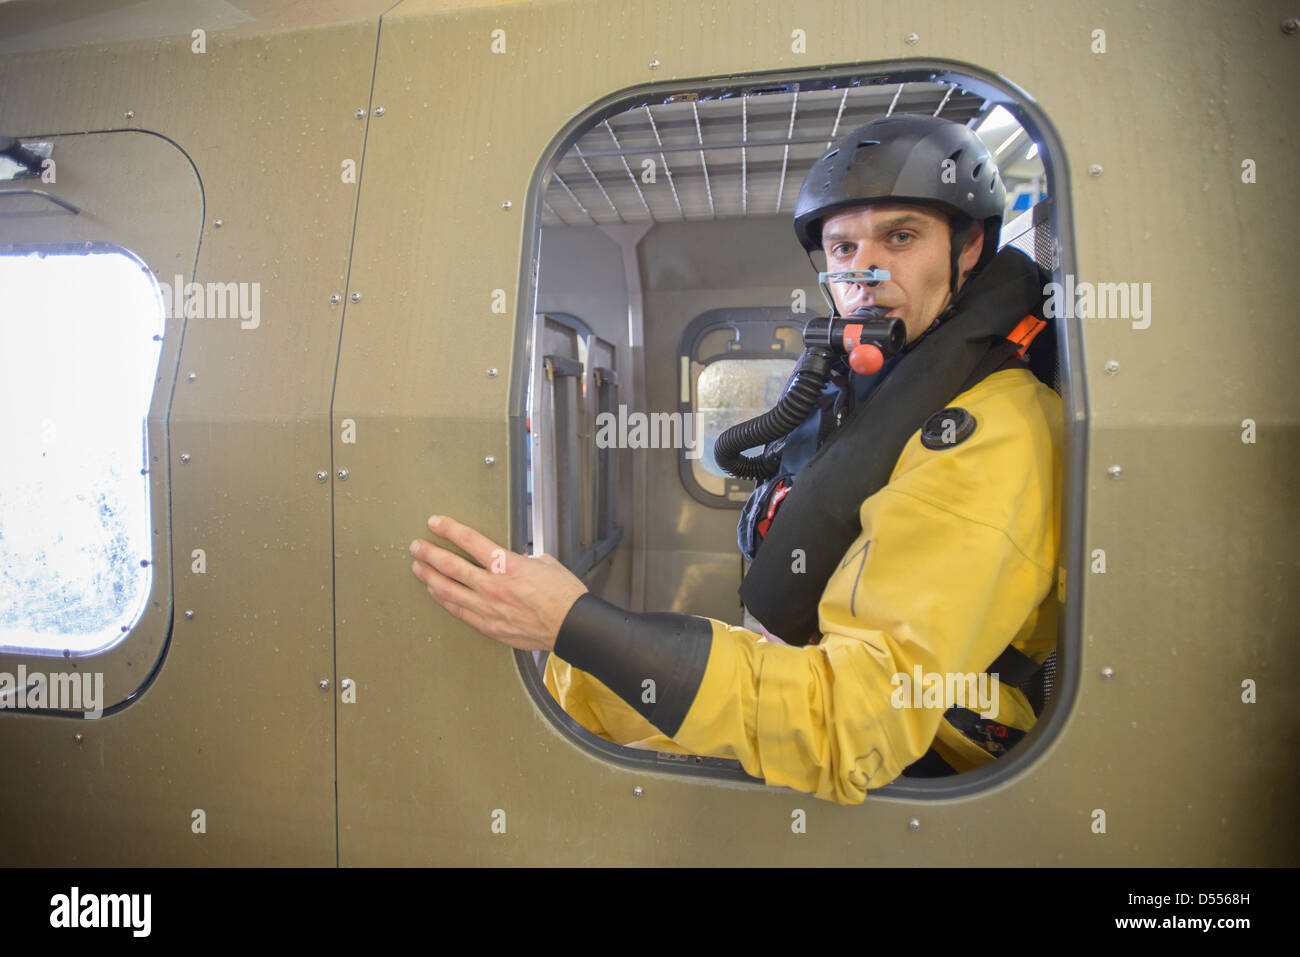 Oil worker in simulated helicopter - Stock Image